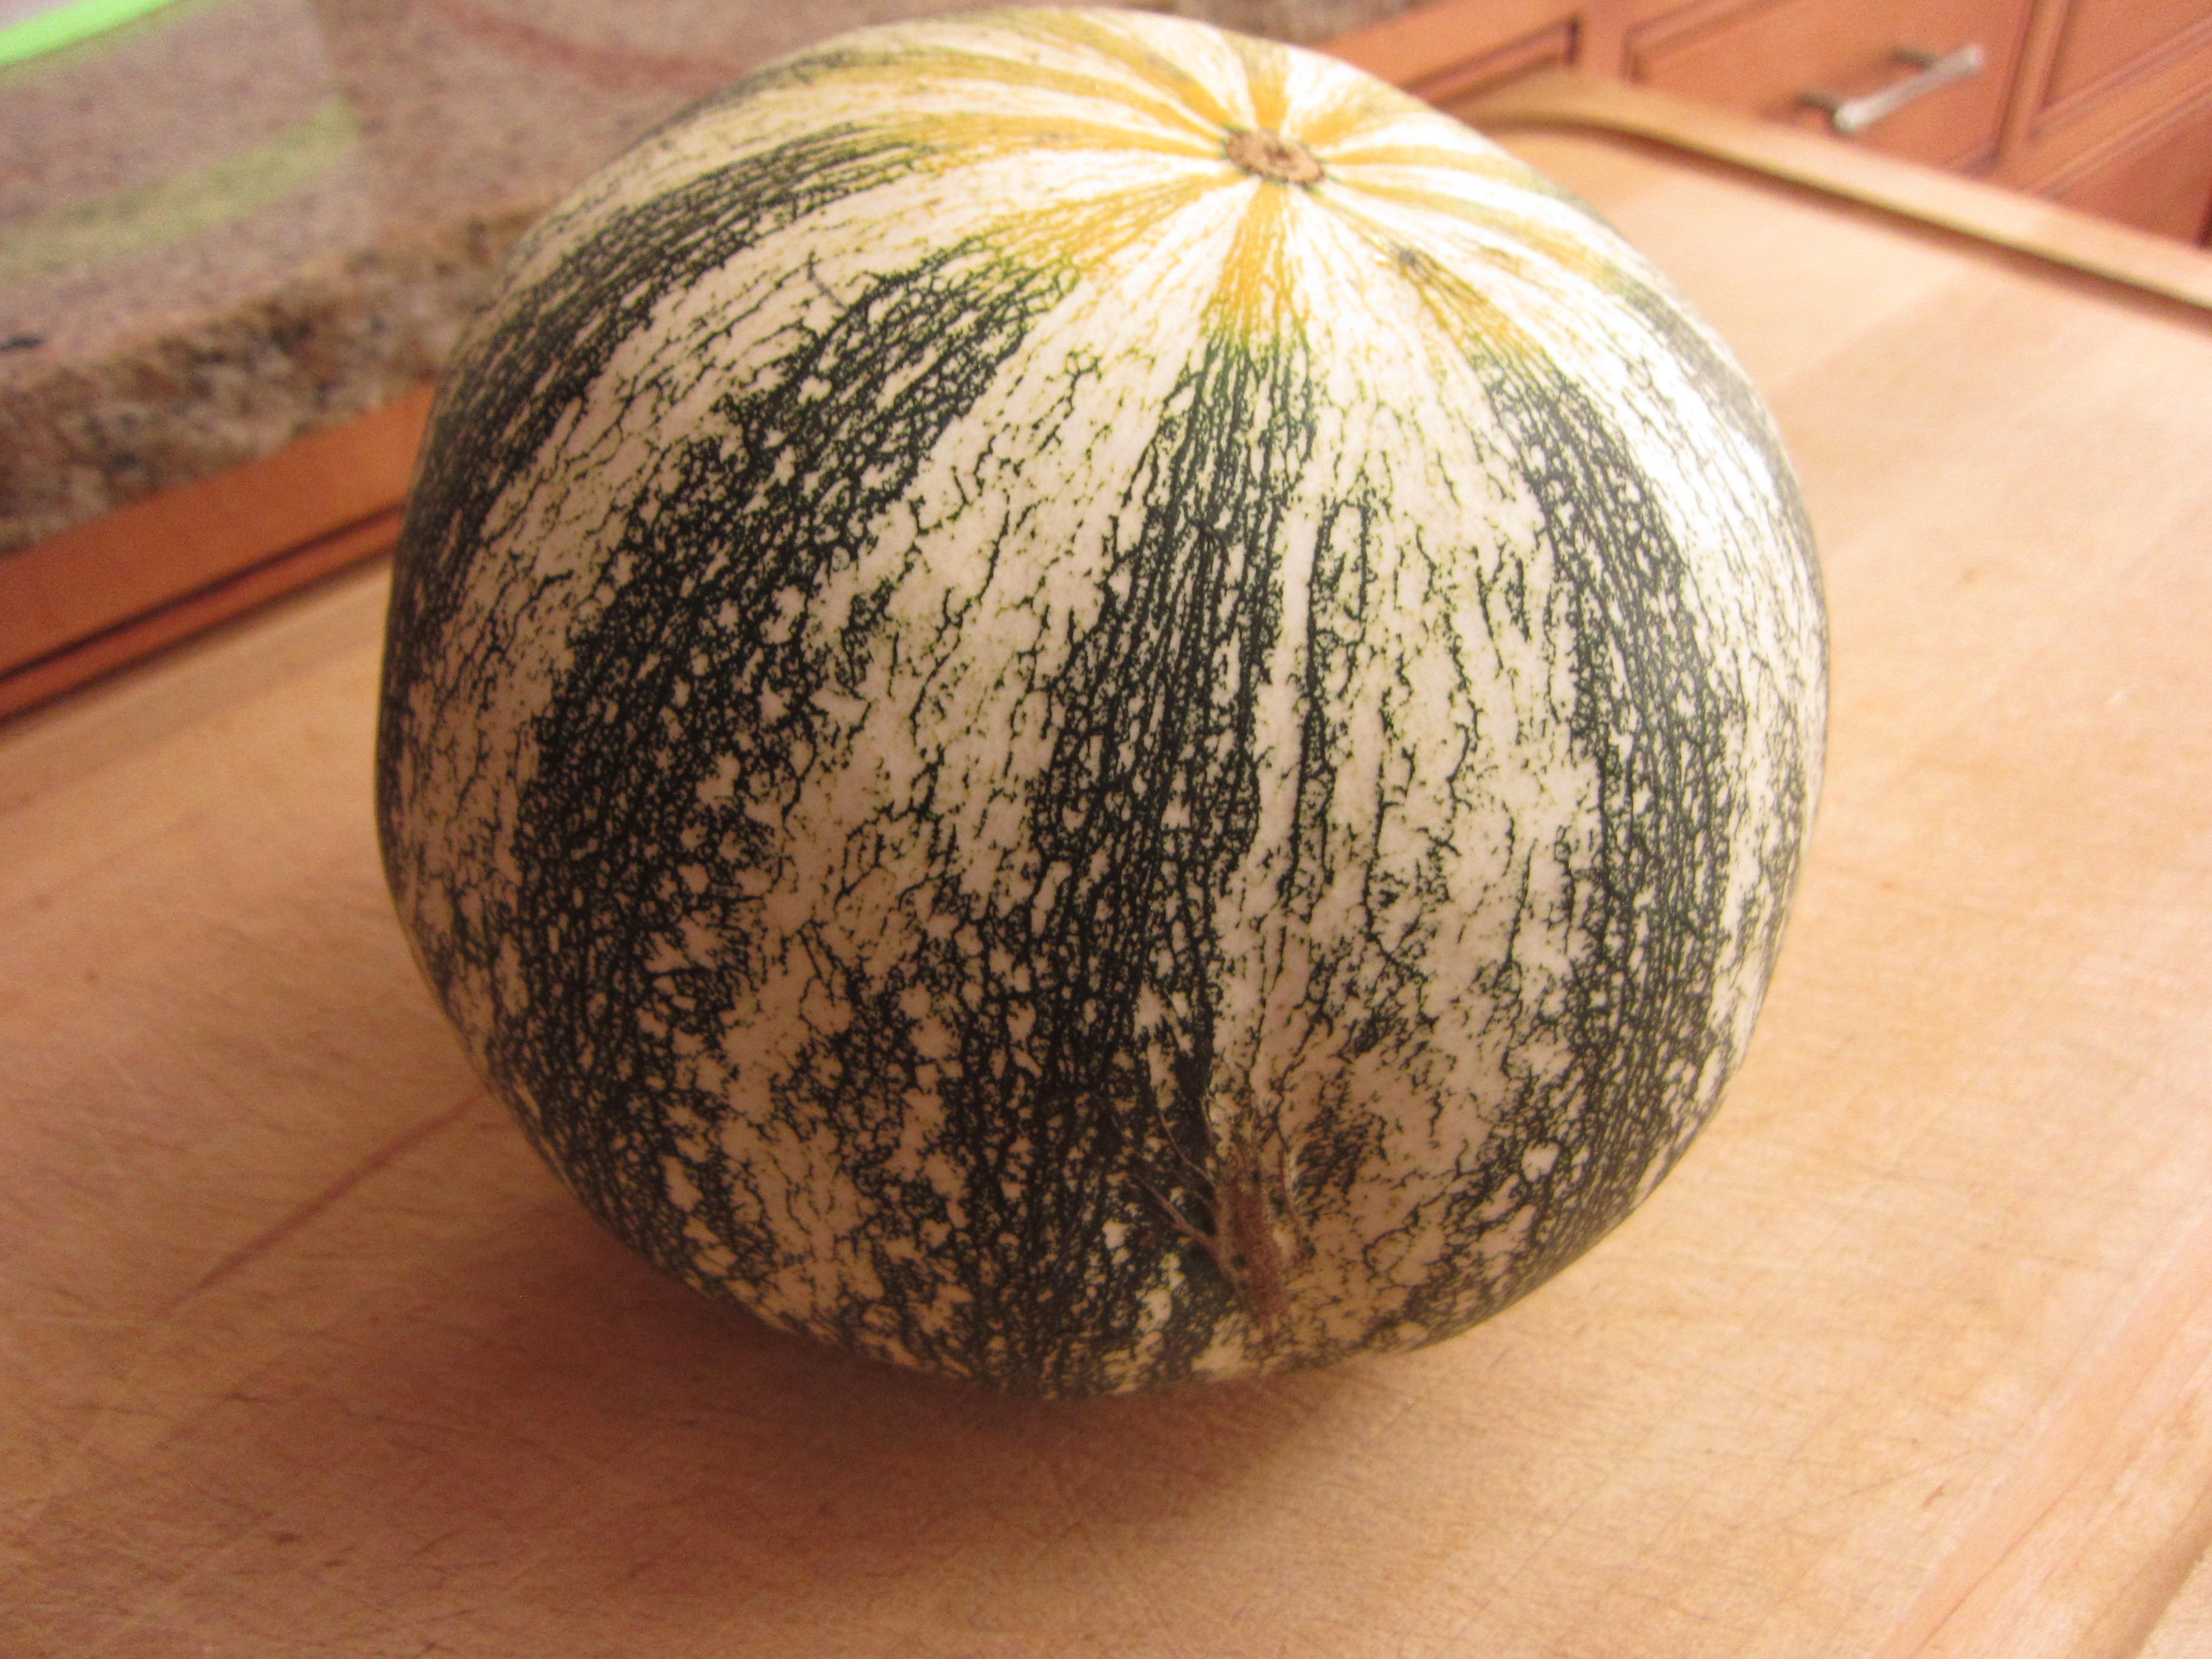 The pumpkin (ours anyway) was only about 8 inches in diameter.